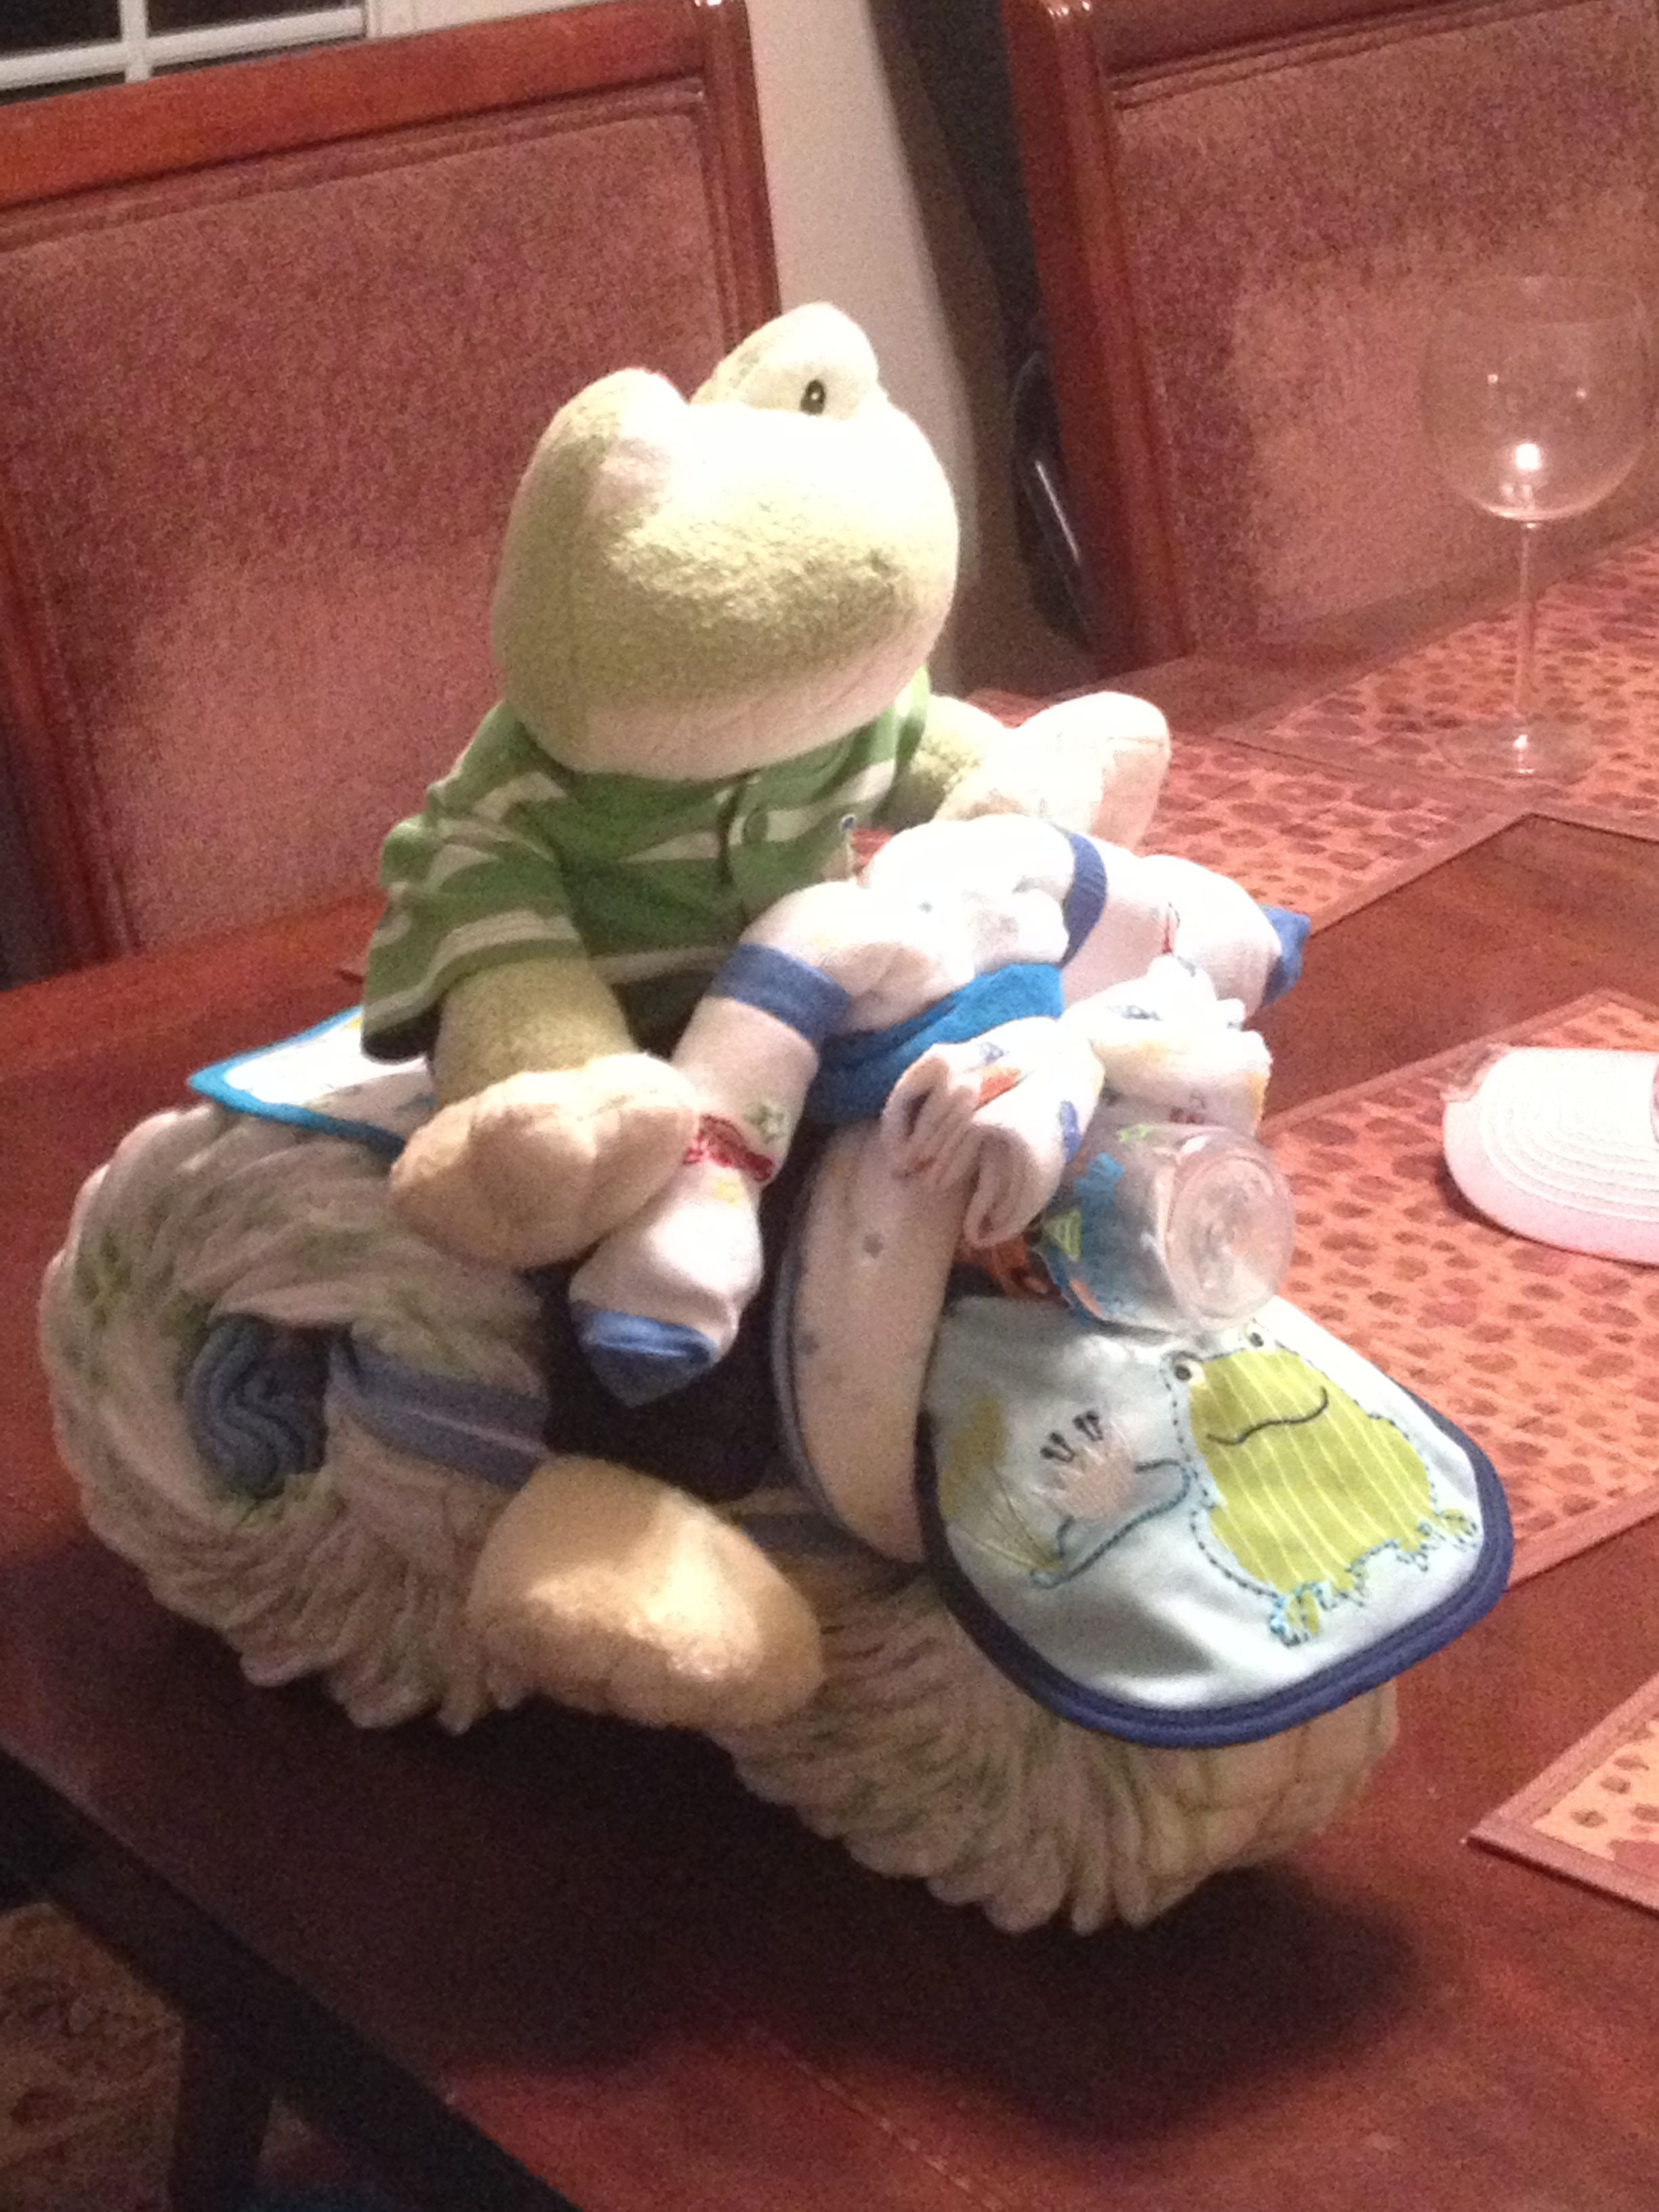 Frog diaper motorcycle for baby showers